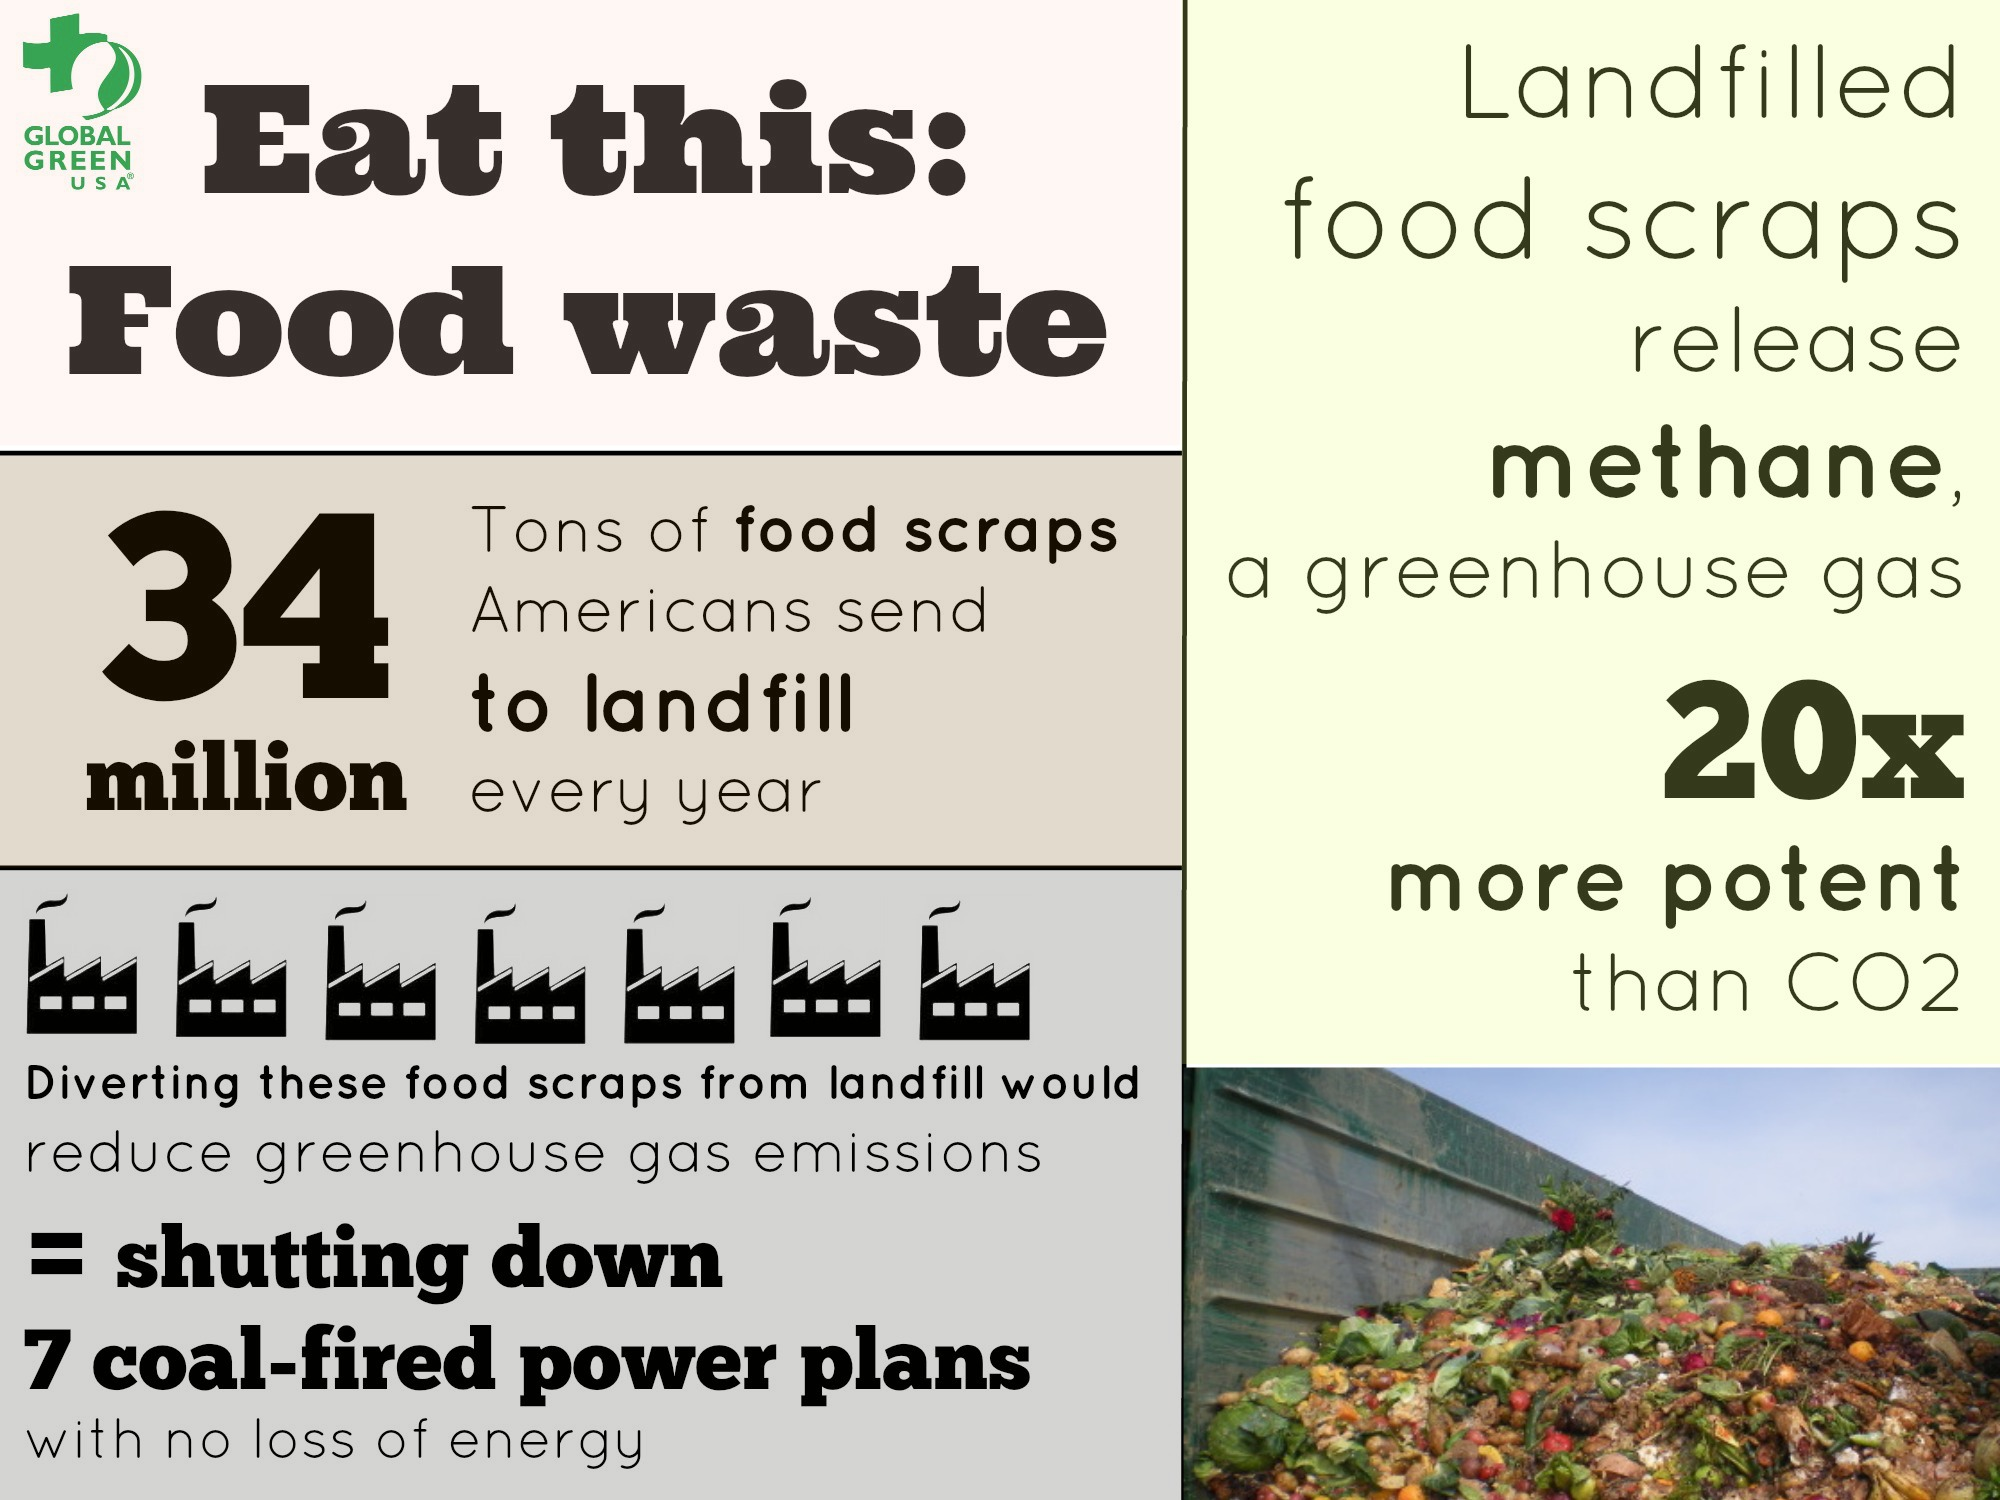 Global Green Food Waste Infographic